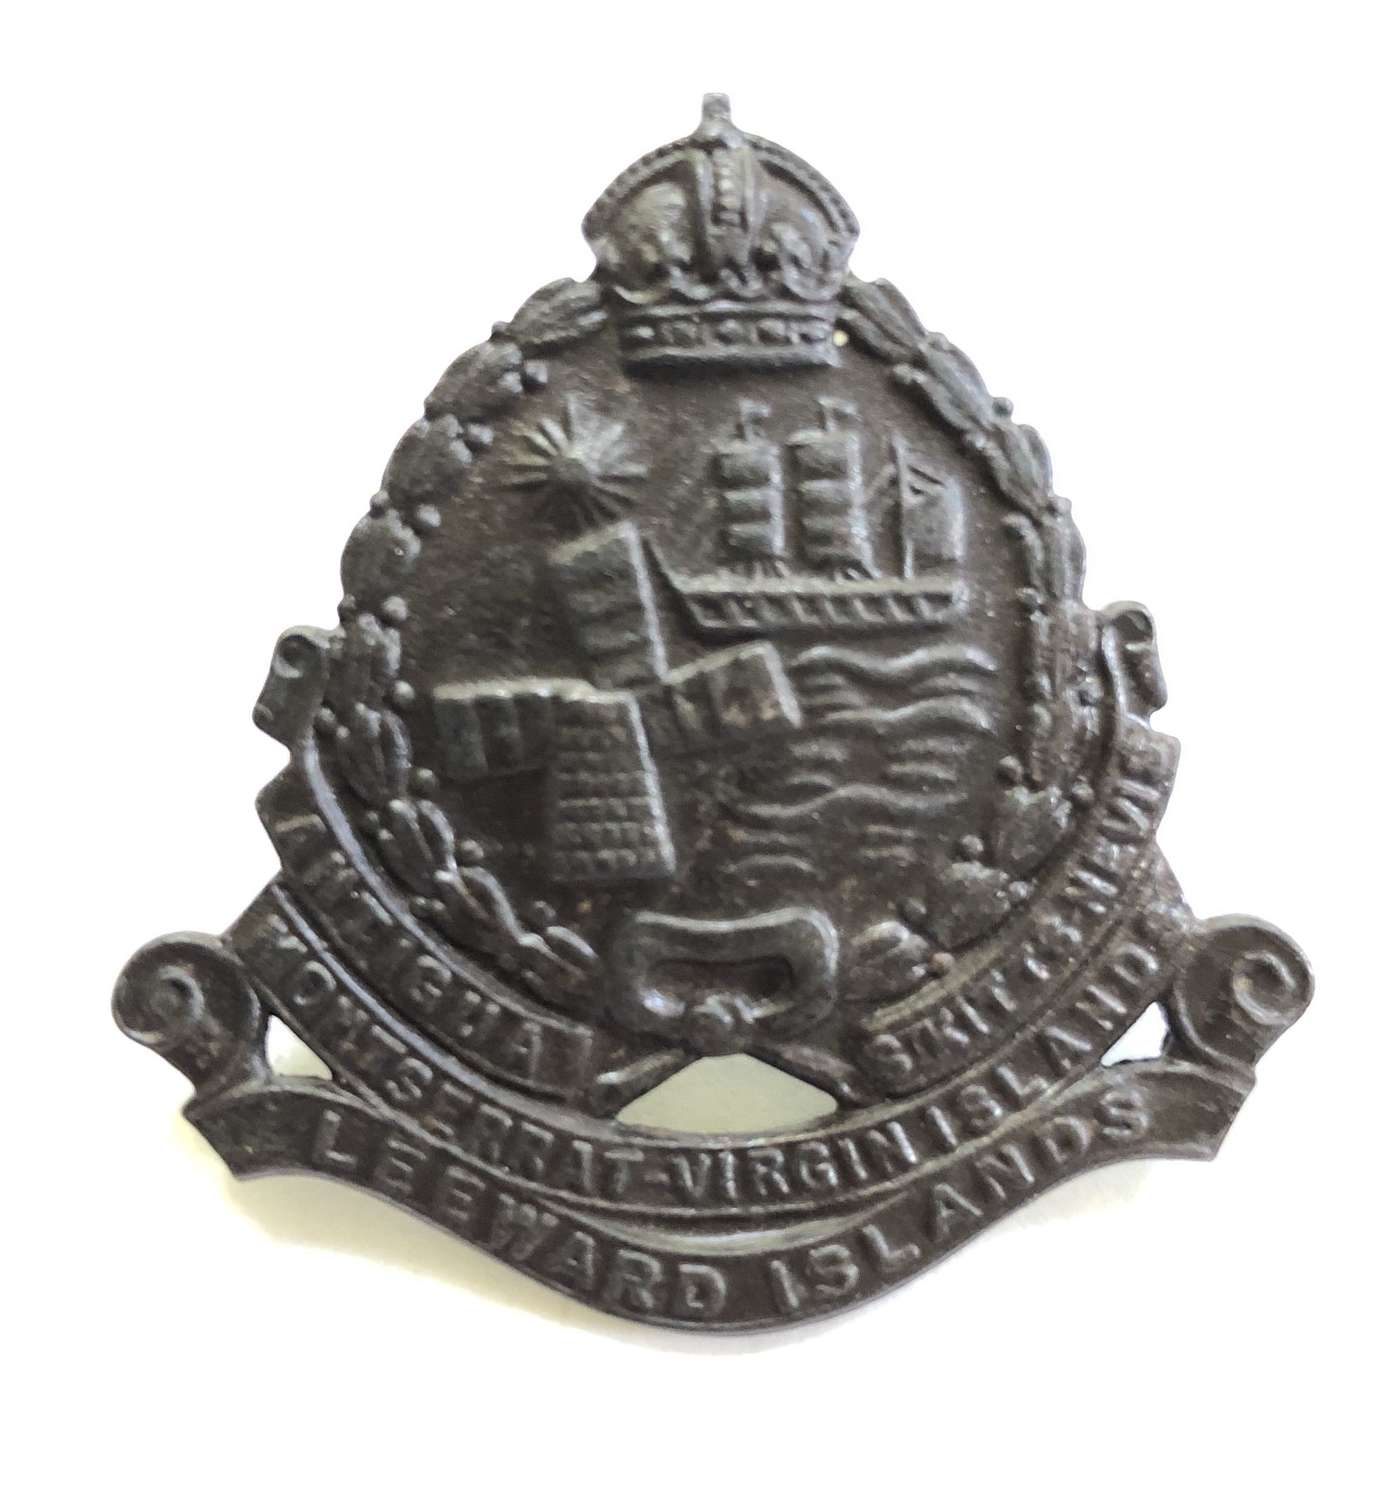 Leeward Islands Battalion bronzed cap badge